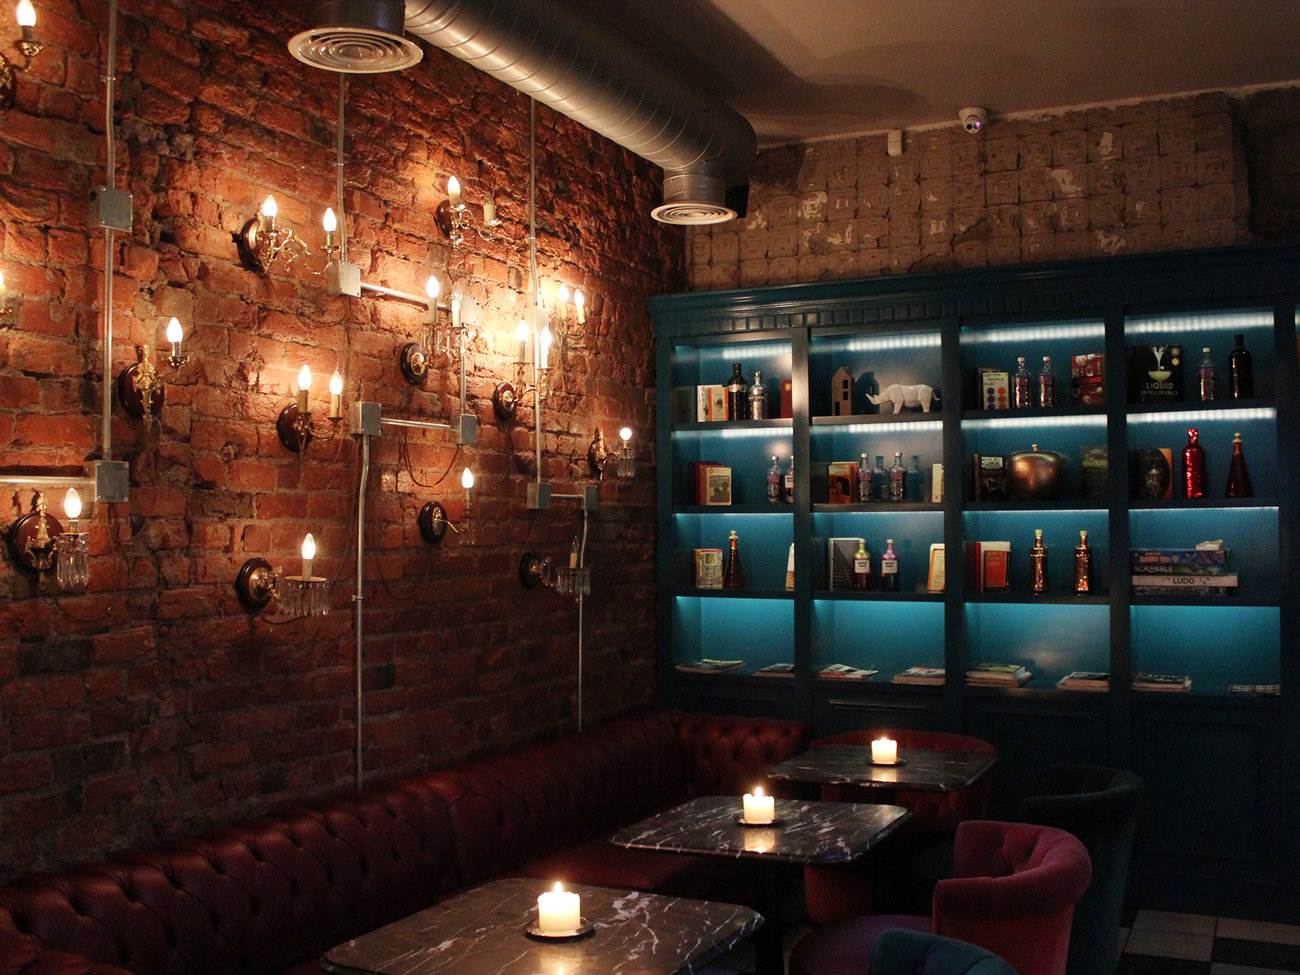 The Chelsea Drugstore Bar in Dublin